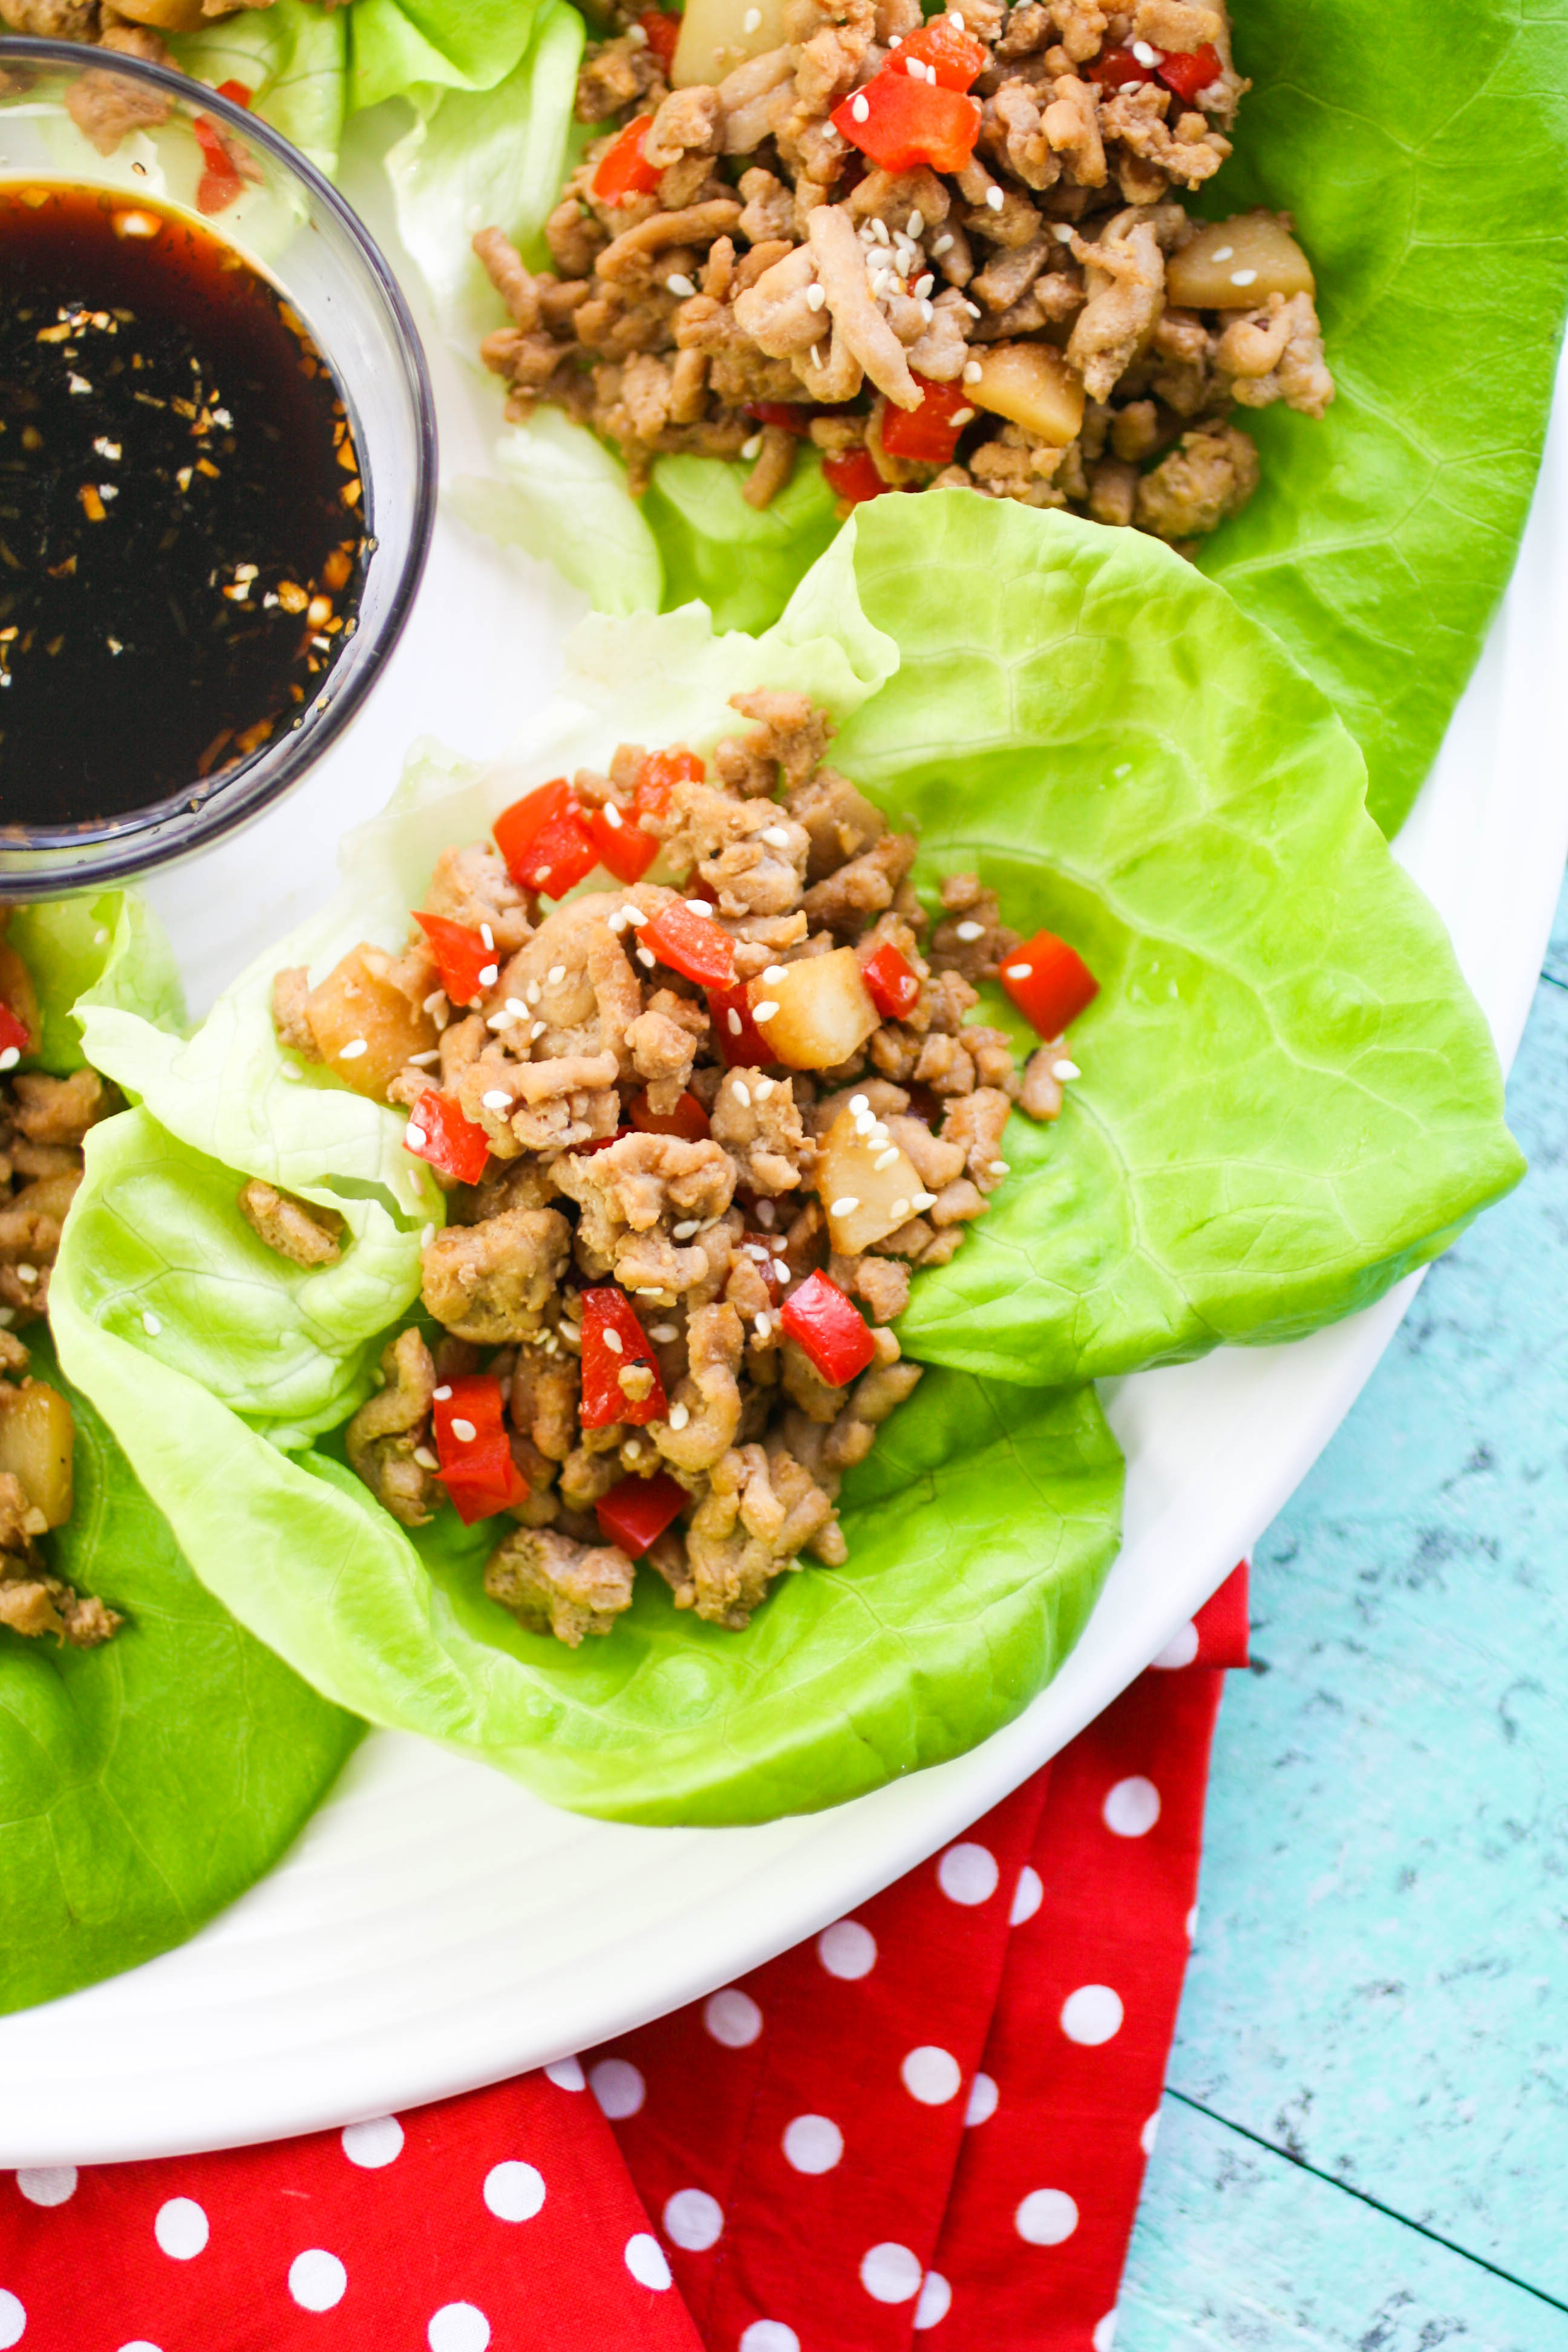 Touchdown Turkey Lettuce Wraps are fun to serve for game-day fun! Touchdown Turkey Lettuce Wraps are healthy and tasty -- perfect for a gathering!